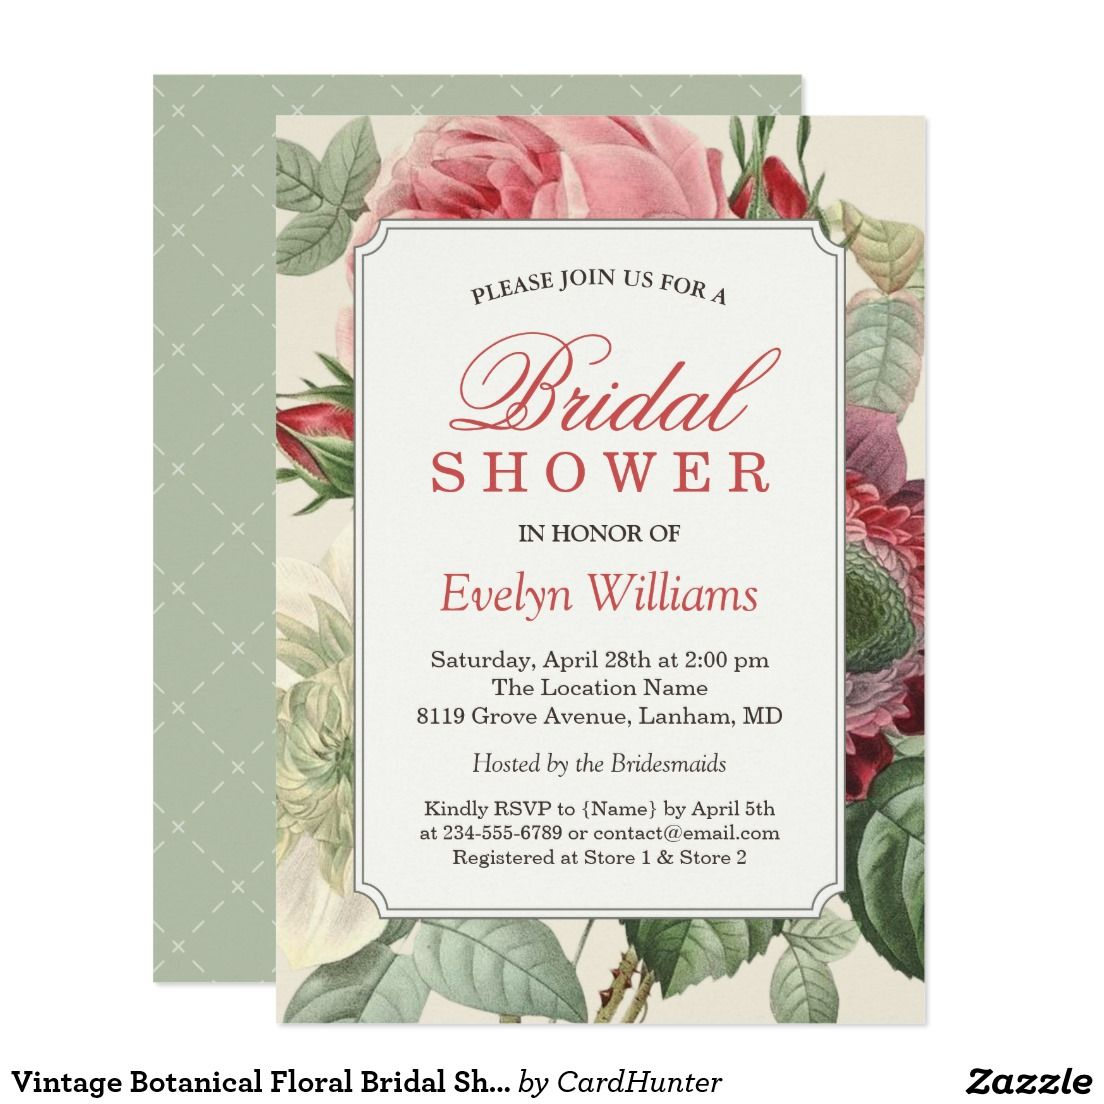 Vintage Botanical Floral Bridal Shower Invitation Bridal Shower